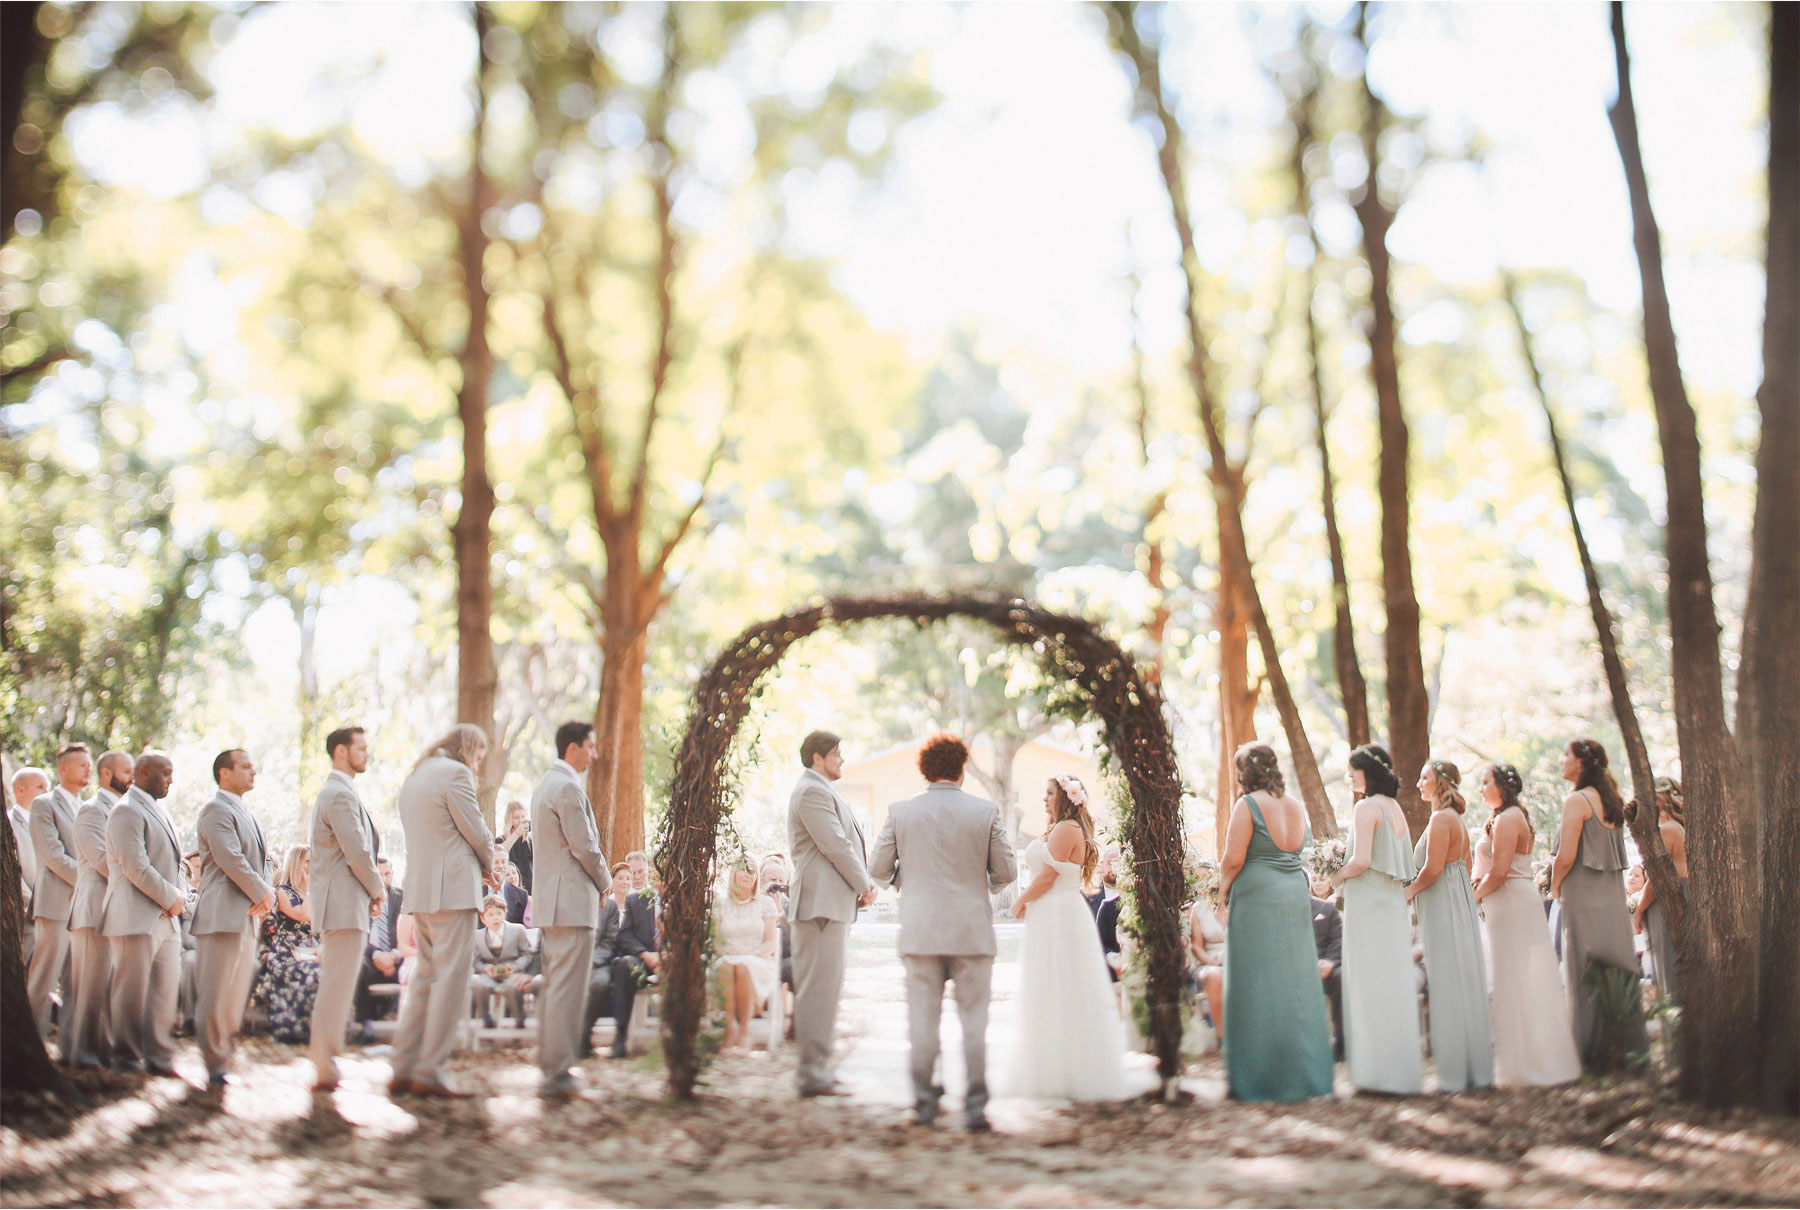 16-Brandon-Florida-Wedding-Photographer-by-Andrew-Vick-Photography-Casa-Lantana-Spring-Ceremony-Bride-Groom-Bridal-Party-Vows-Flower-Crown-Vintage-Kristianna-and-Ben.jpg